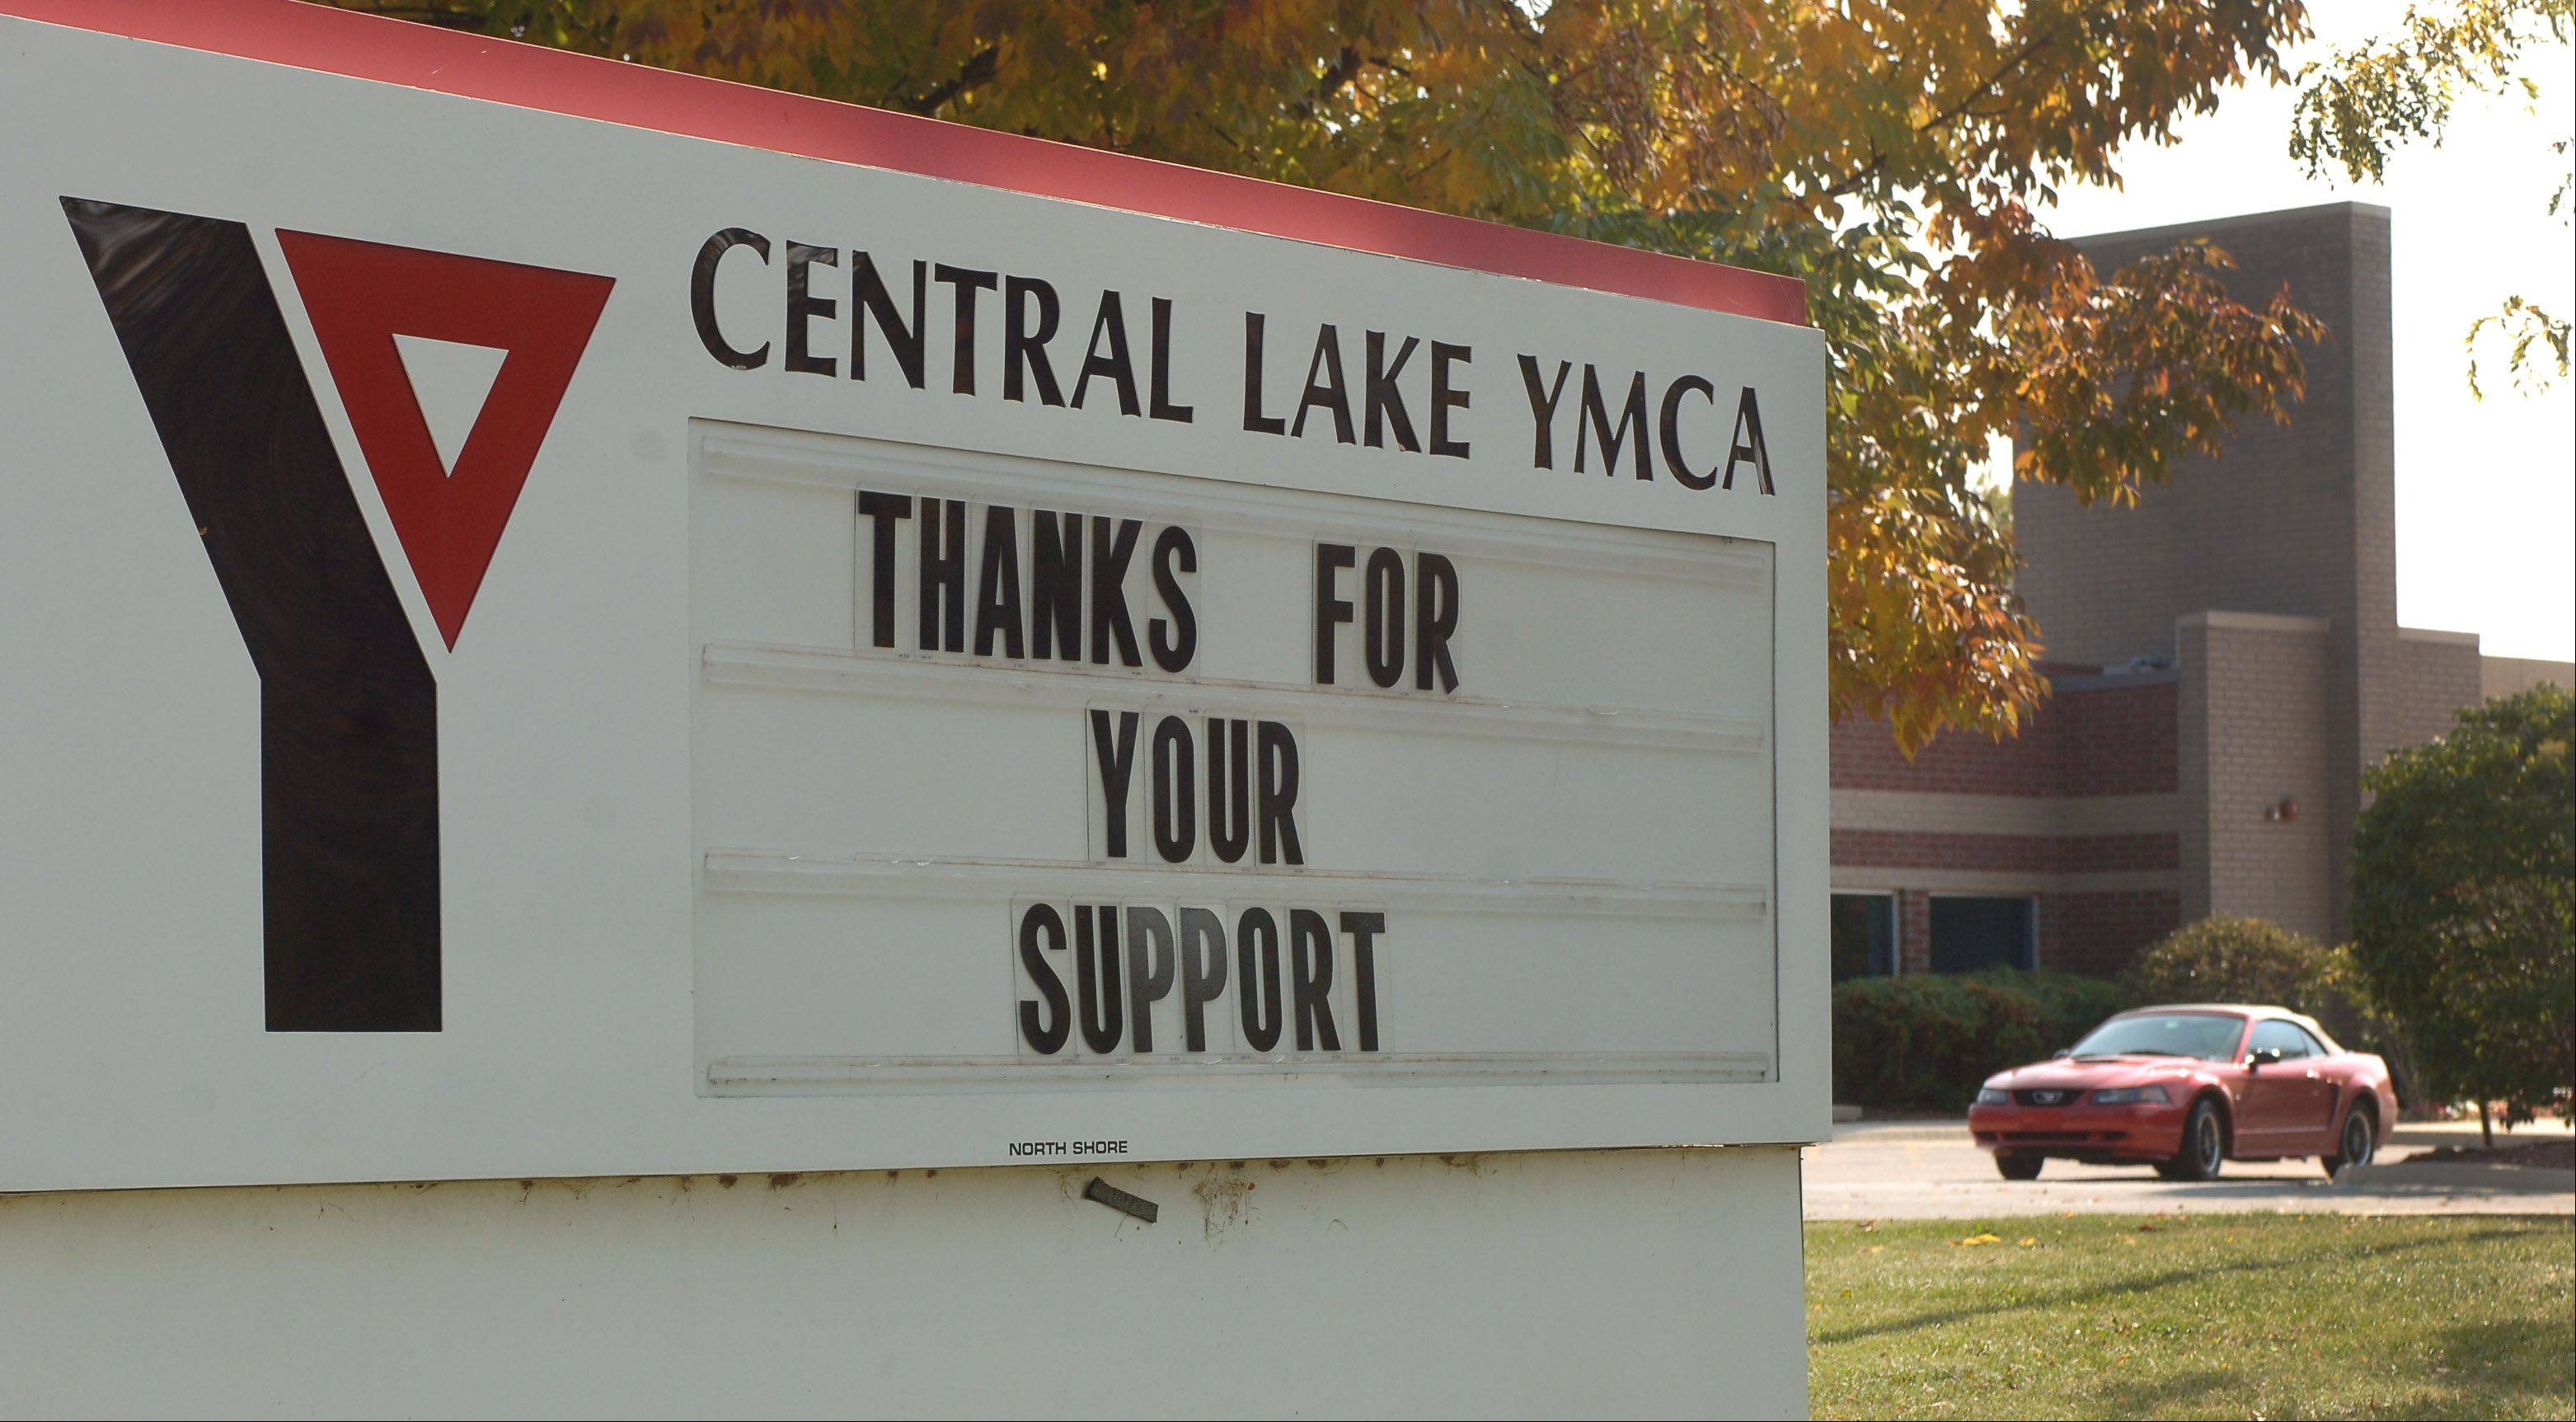 Sale of Central Lake YMCA in Vernon Hills pondered as answer for financial woes